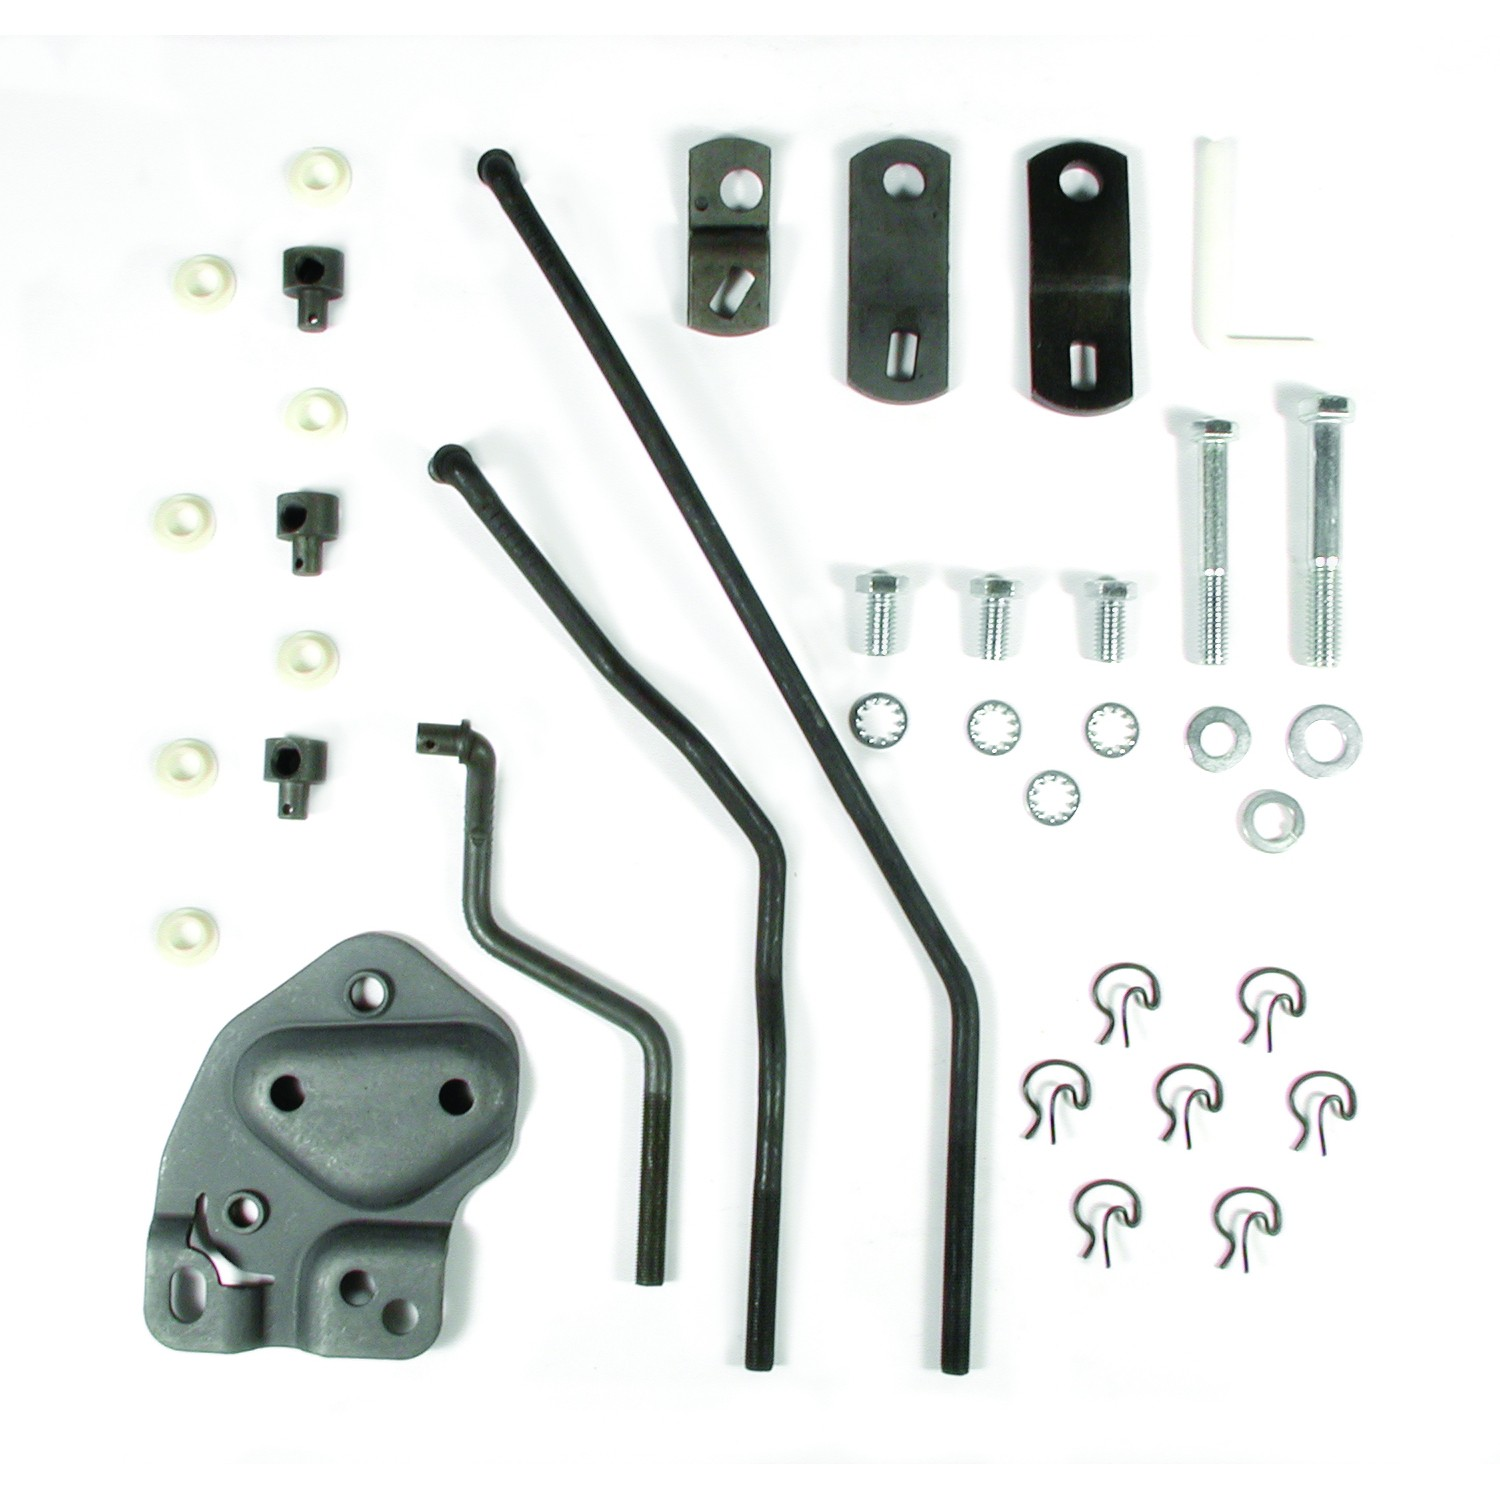 Diagram Hurst Parts Shifter 39100014c Muncie Wiring Competition Plus Installation Kit For Transmission Auto Stick 1500x1500